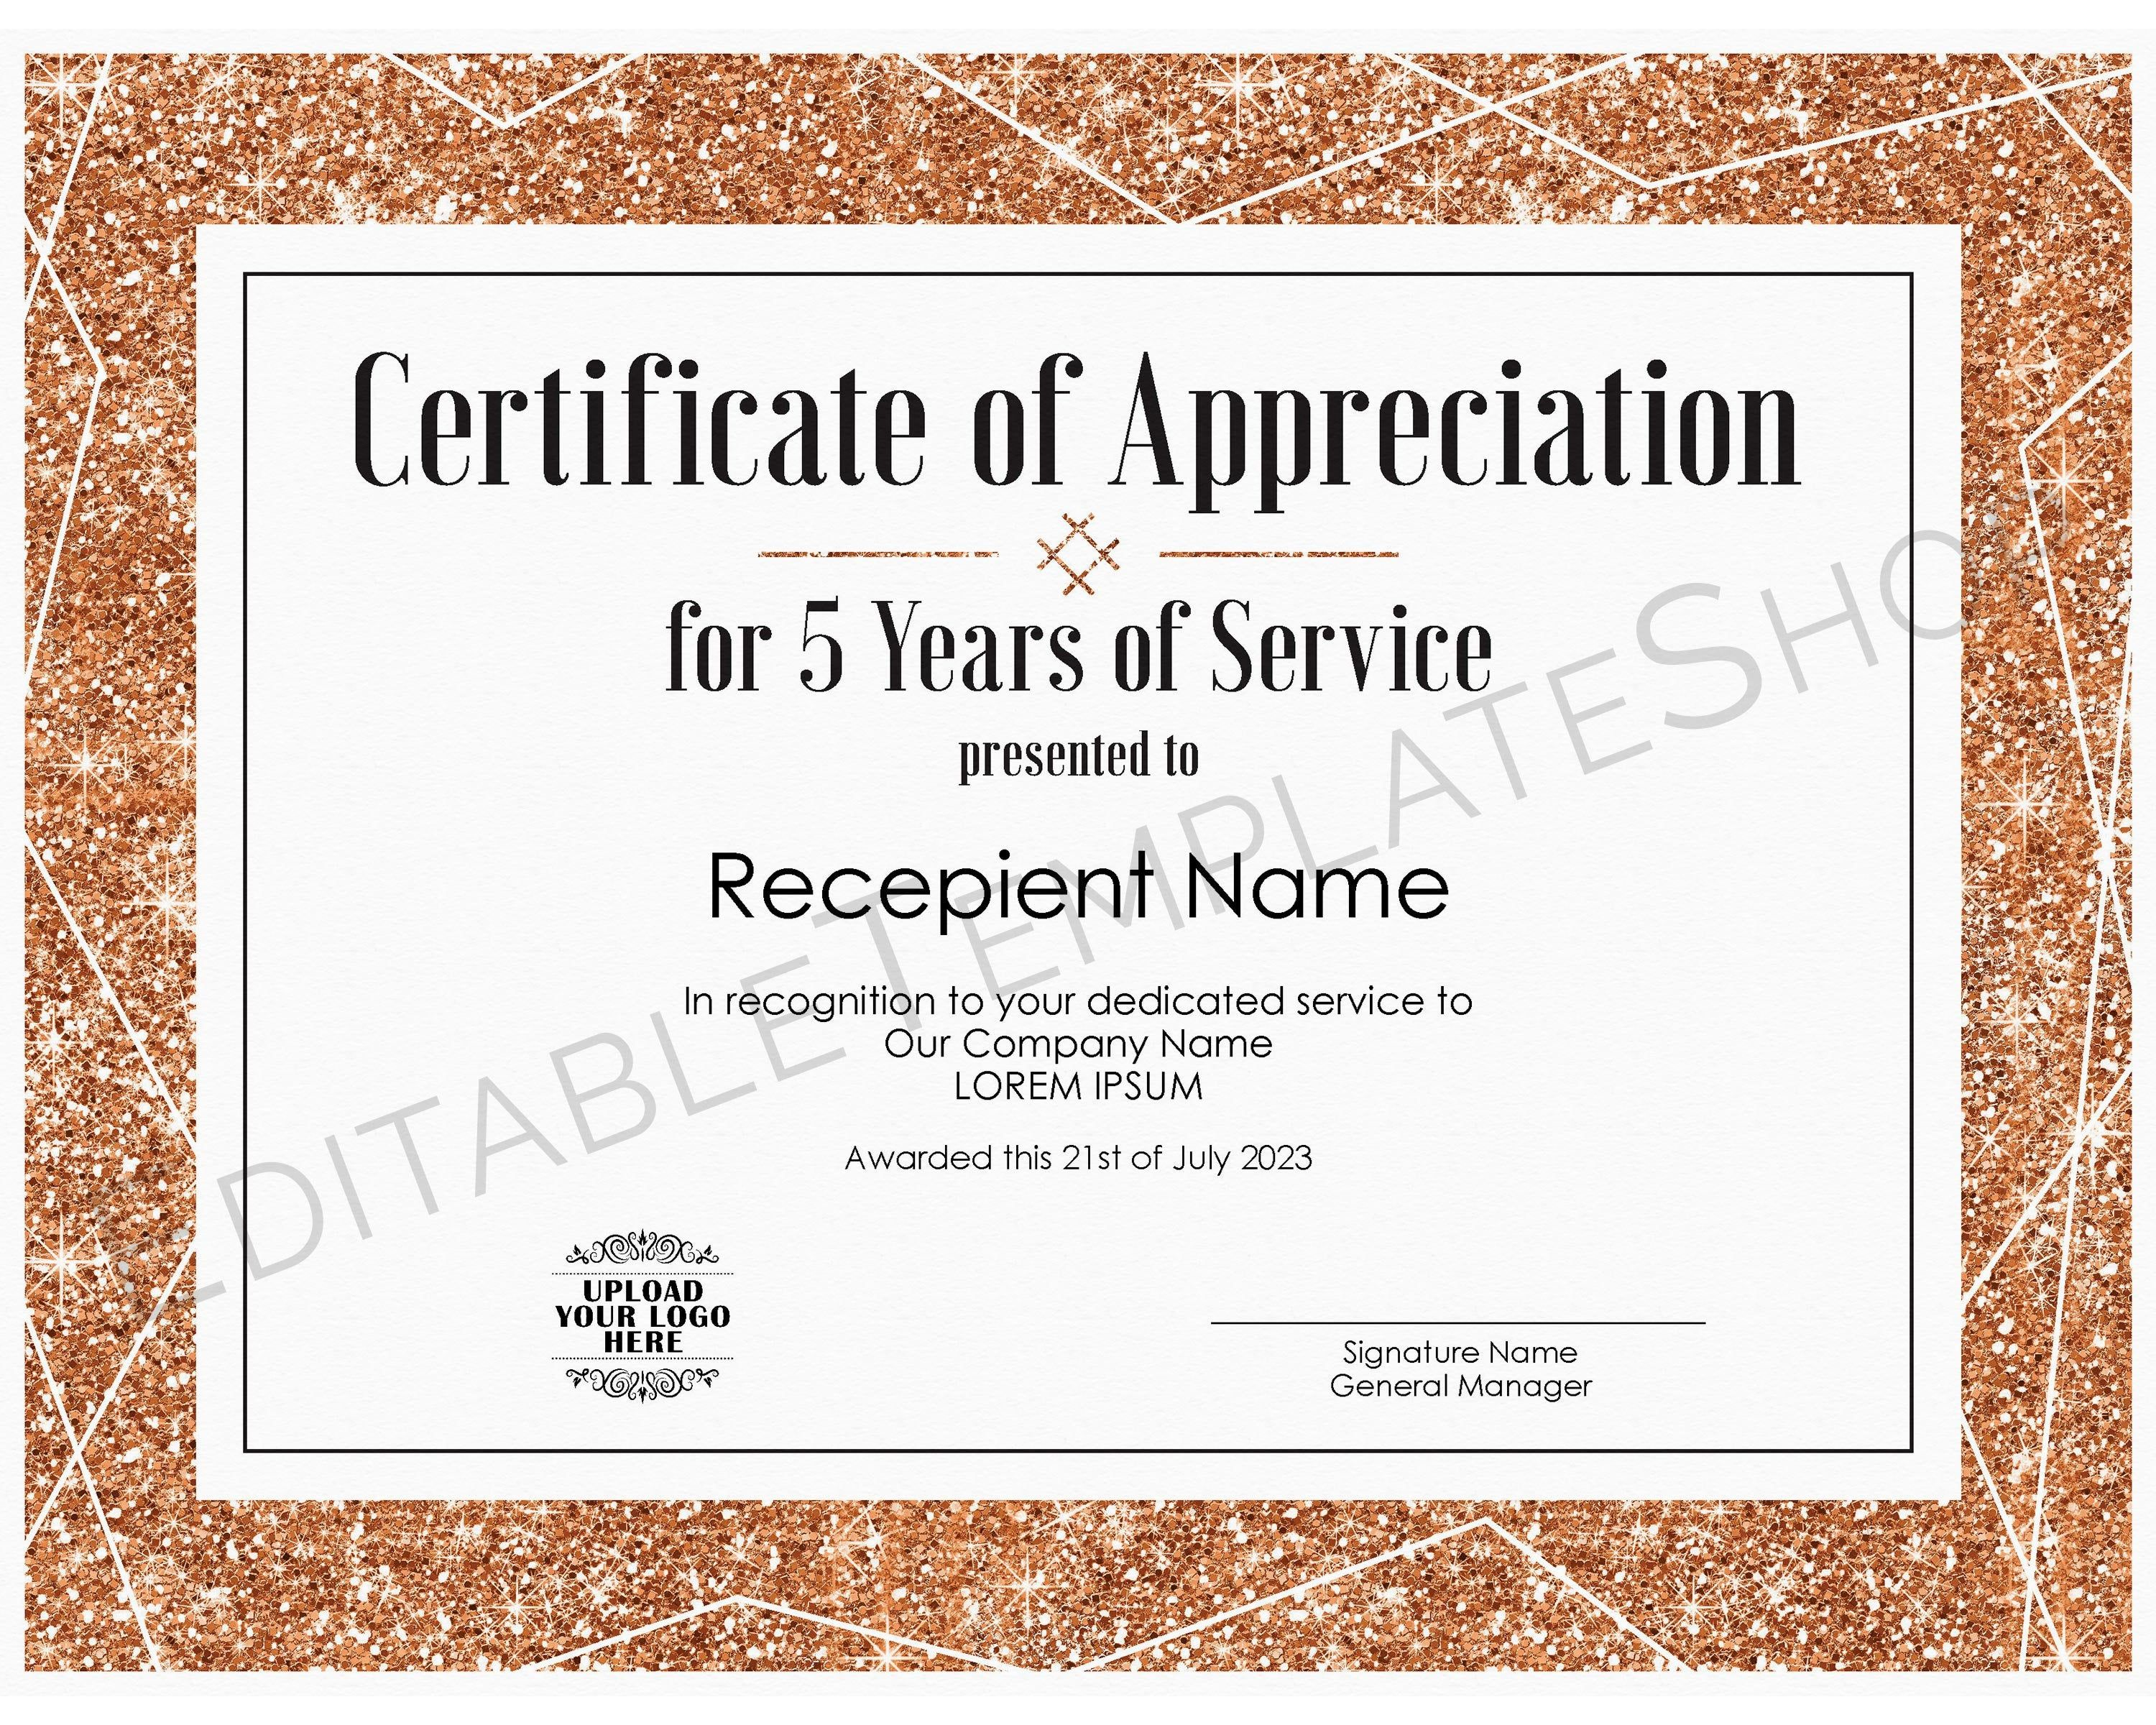 5 Years Of Service Editable Certificate Of Appreciation Etsy Editable Certificates Certificate Of Appreciation Awards Certificates Template Certificates for years of service